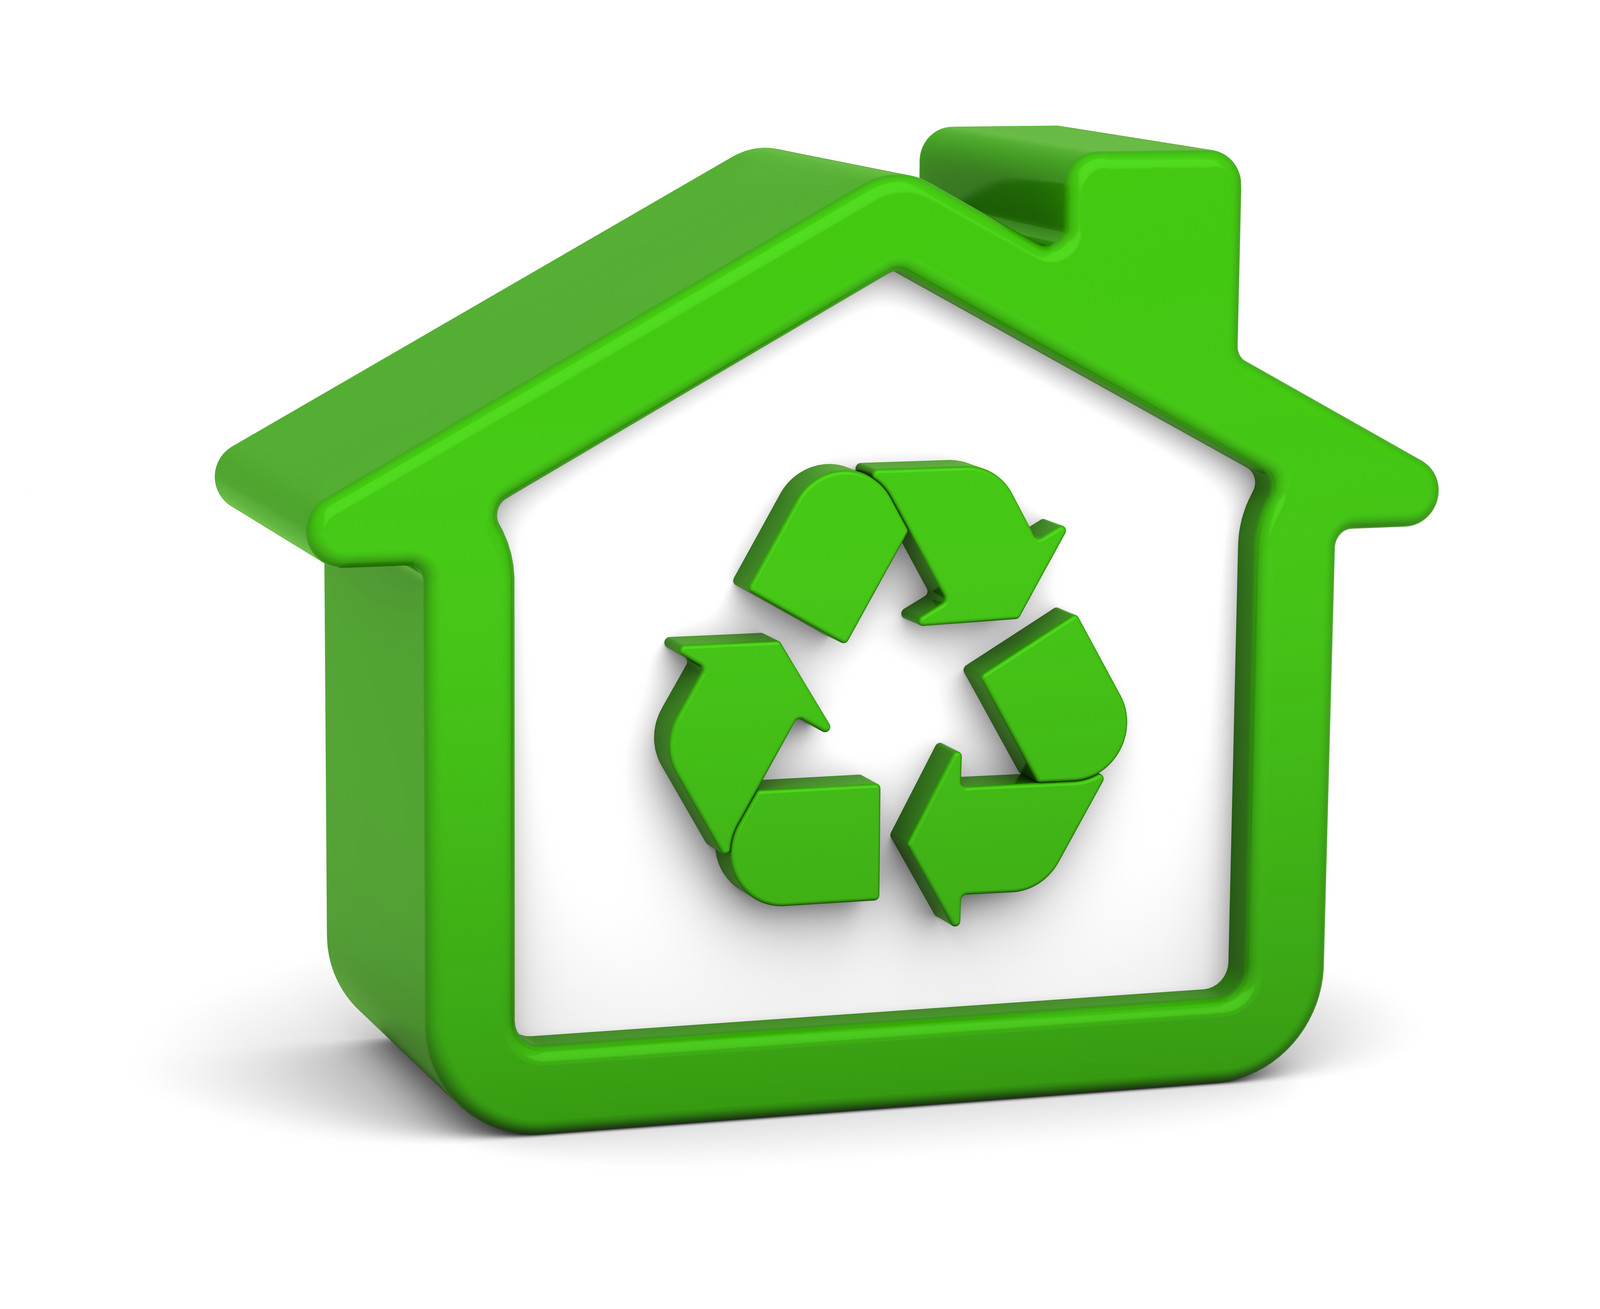 Company Logos clipart eco home Green emailed Home report Signature